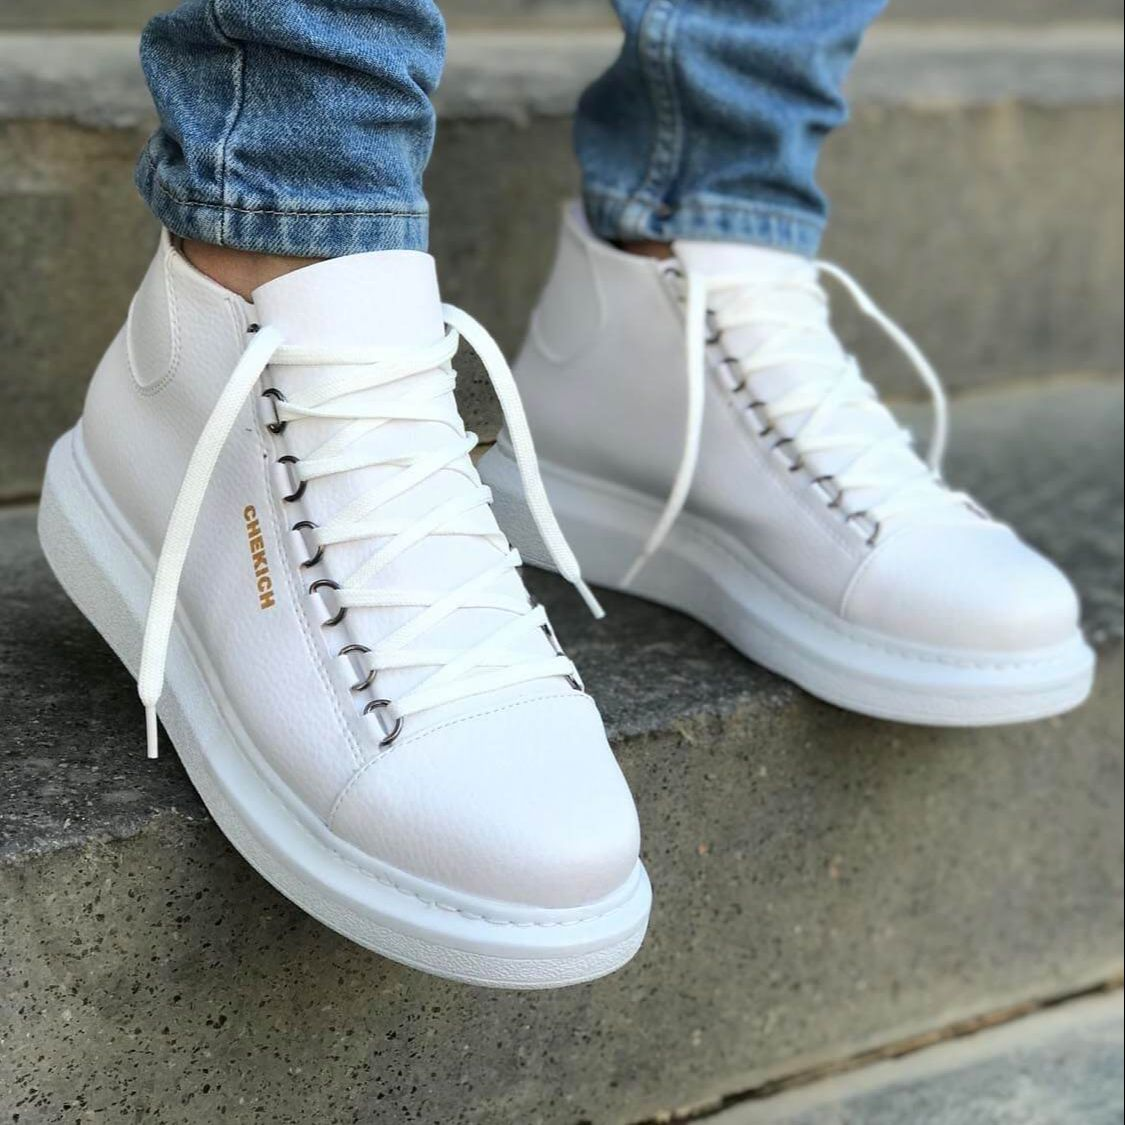 Fashion Shoes For Men's Boots 2021 Casual Sport Boots Casual Men's Boots Different Color Men's Shoes Comfortable Sole Sneakers